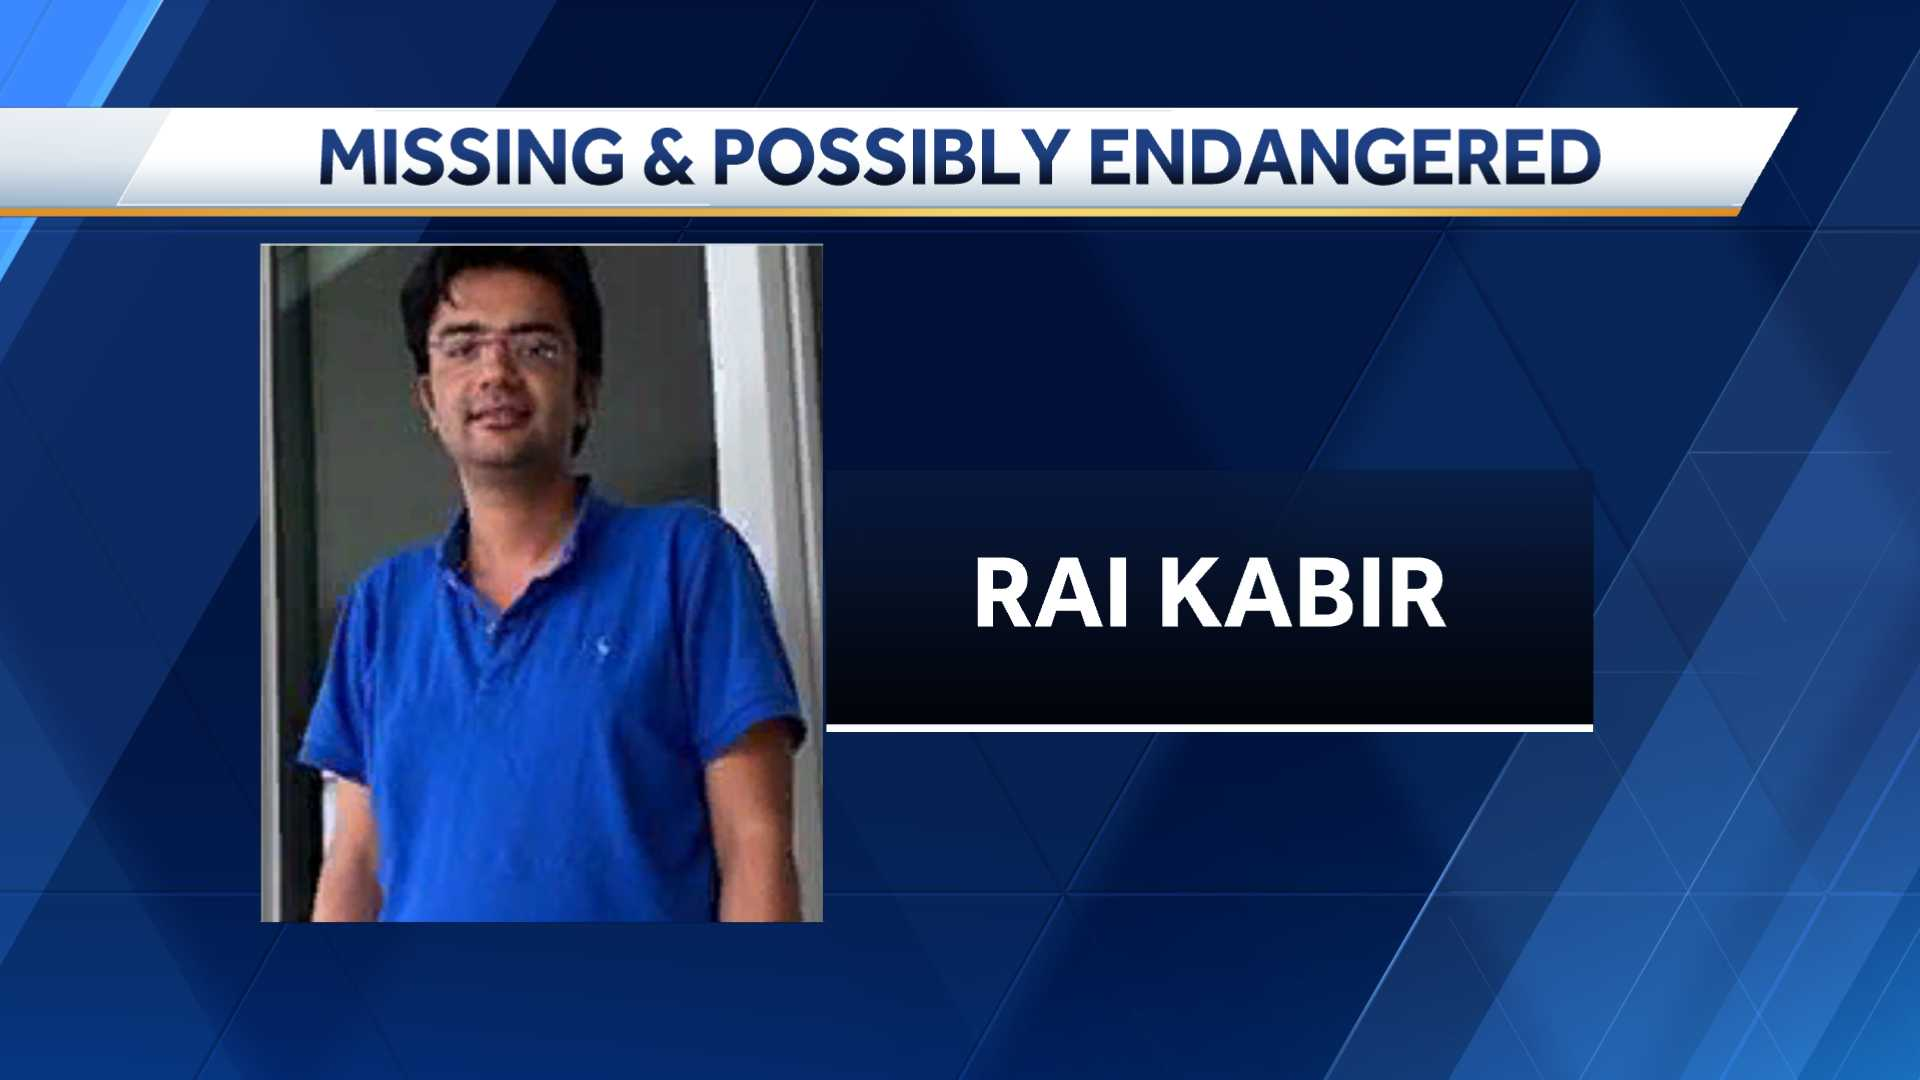 SAFELY LOCATED: Palm Beach County deputies searching for missing man